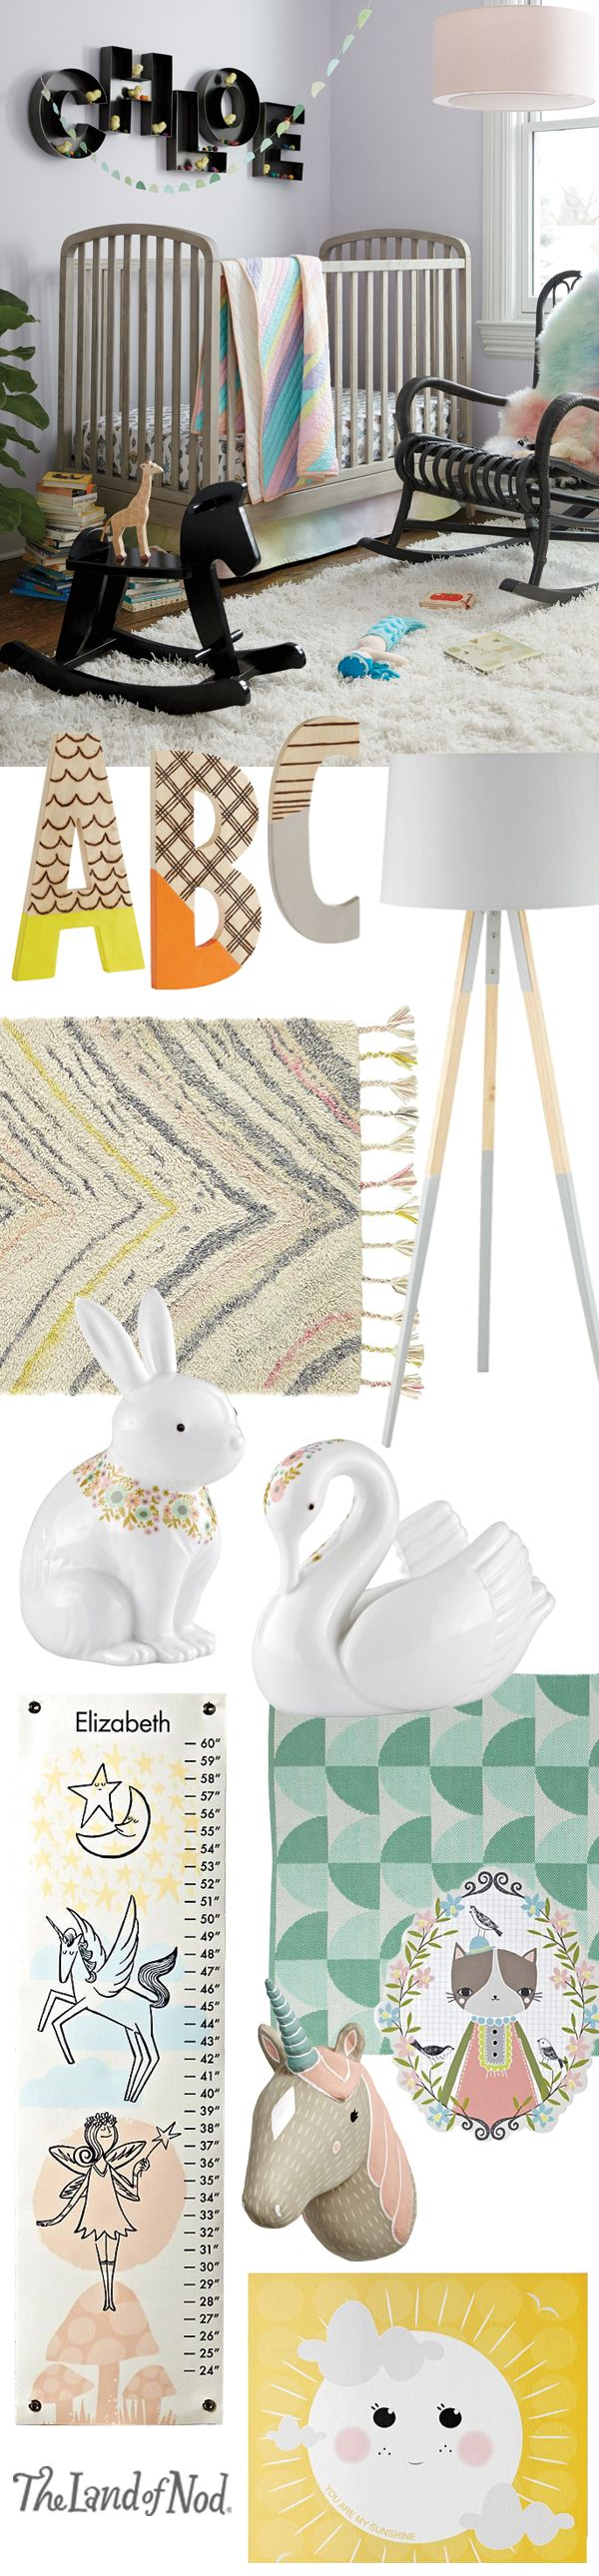 Ruby s rainbow room inspiration for kids bedroom decor at huggies - Create A Stylish And Cozy Nursery In No Time At All The Land Of Nod S Collection Of Wall Art Rugs And Nursery D Cor Will Help You Design A Cozy Room